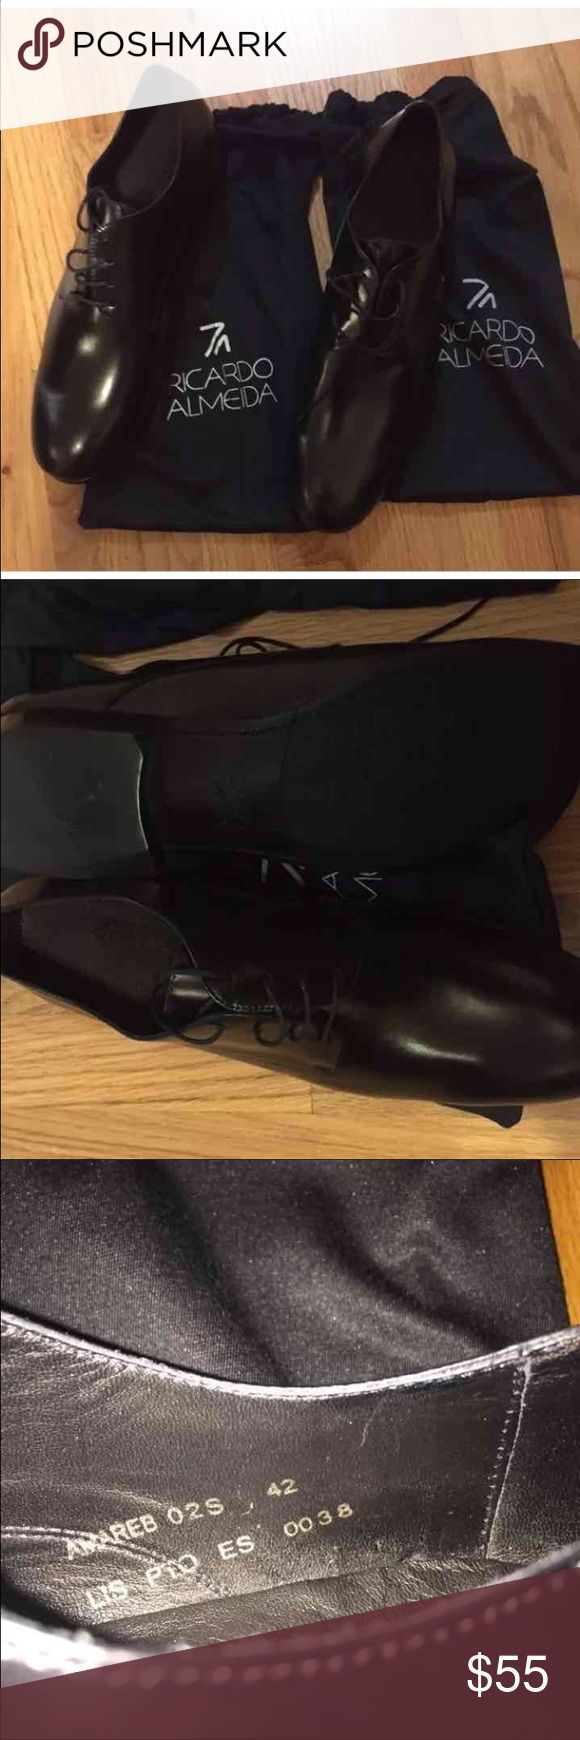 Ricardo Almeida men's shoes Brand new never worn. Brazil shoe size 42 is 10.5 in USA according to Internet search convertworld. Sorry I cannot guarantee it is a 10.5 shoe size.  Brazil's designer shoes. Shoes Oxfords & Derbys